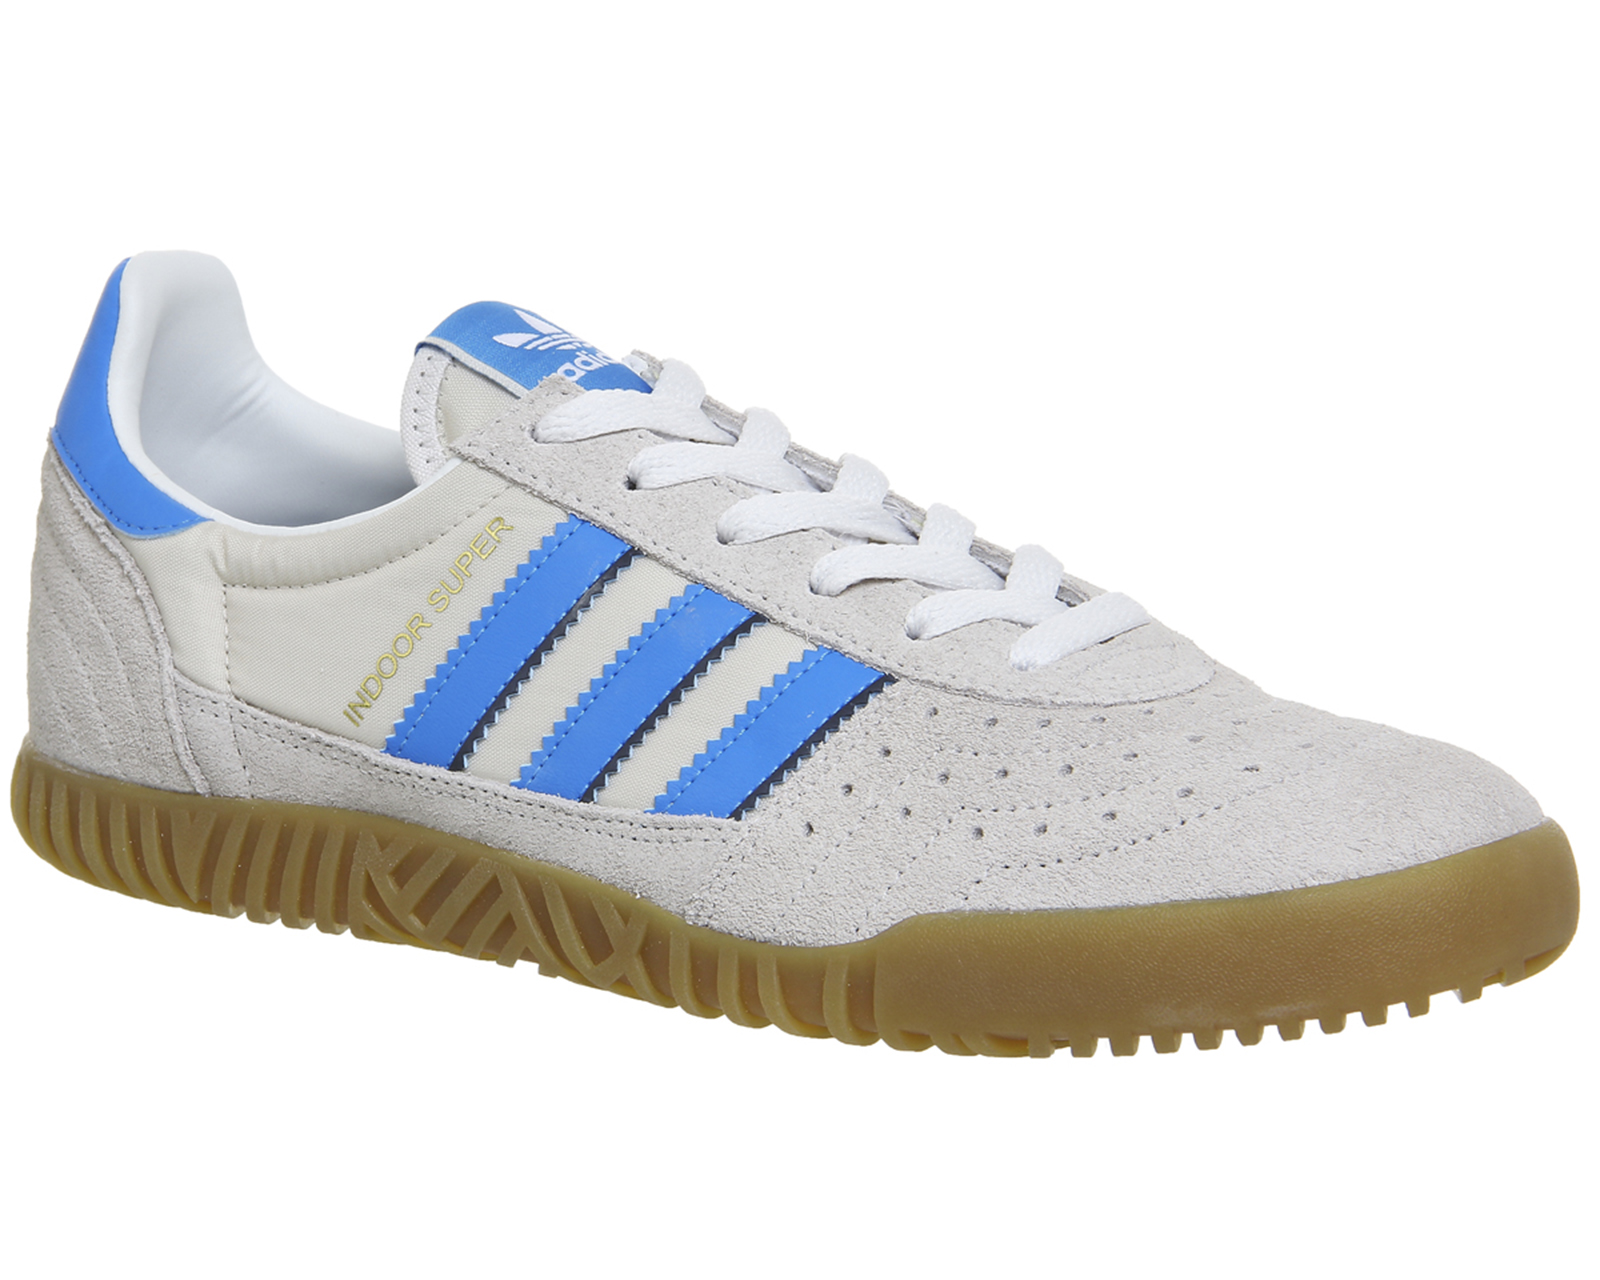 0f8cd408720819 Sentinel Adidas Indoor Super VINTAGE WHITE BRIGHT BLUE Trainers Shoes